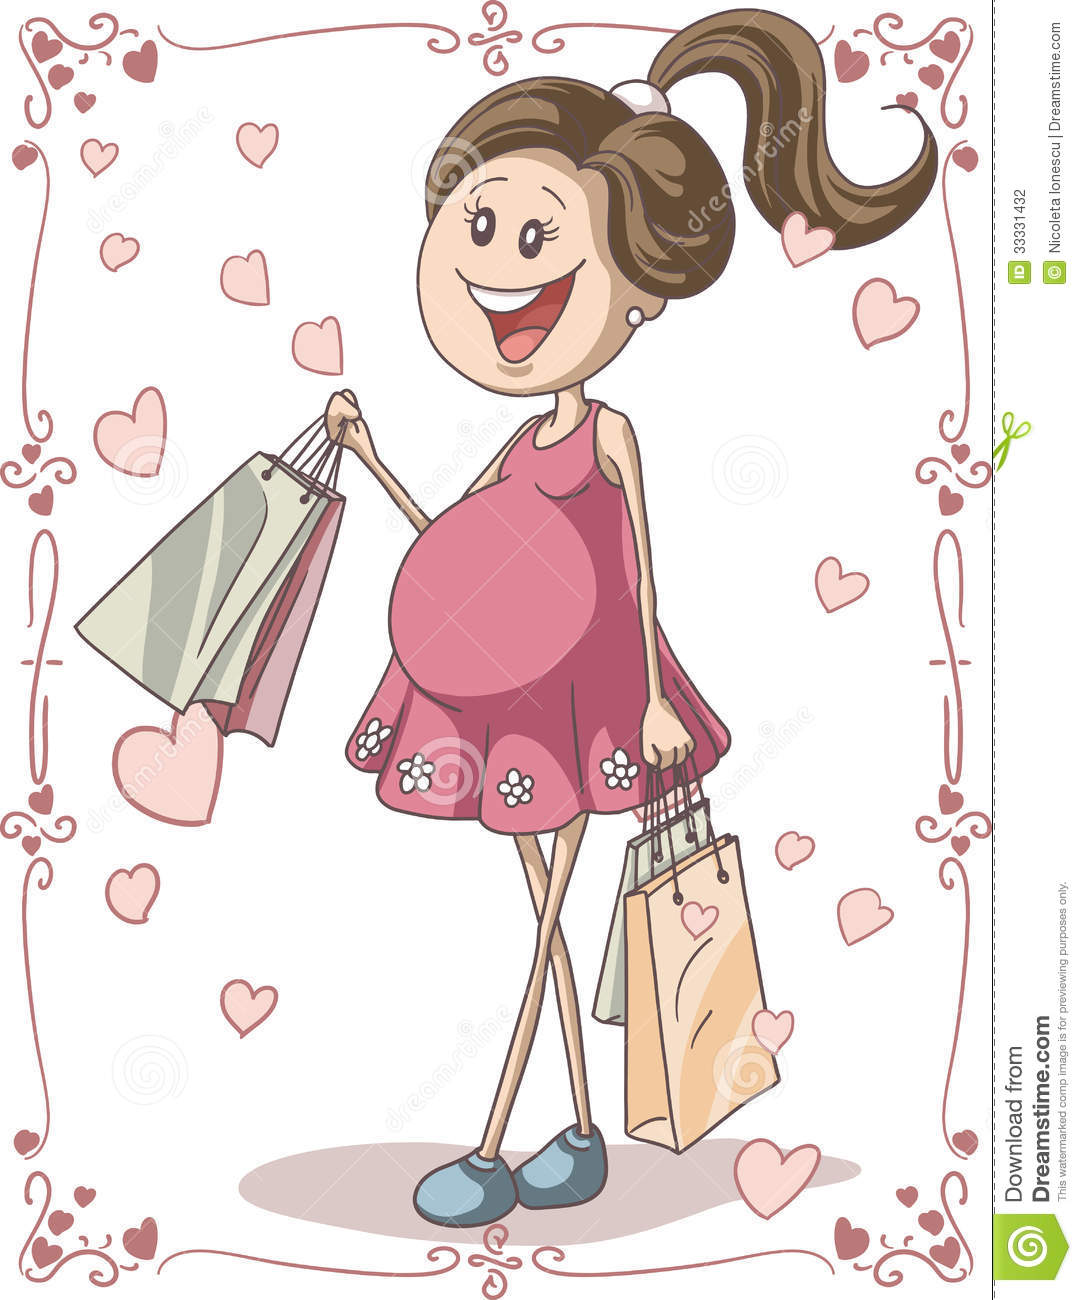 Drawn Cartoon Illustration Of A Pregnant Young Woman With Shopping